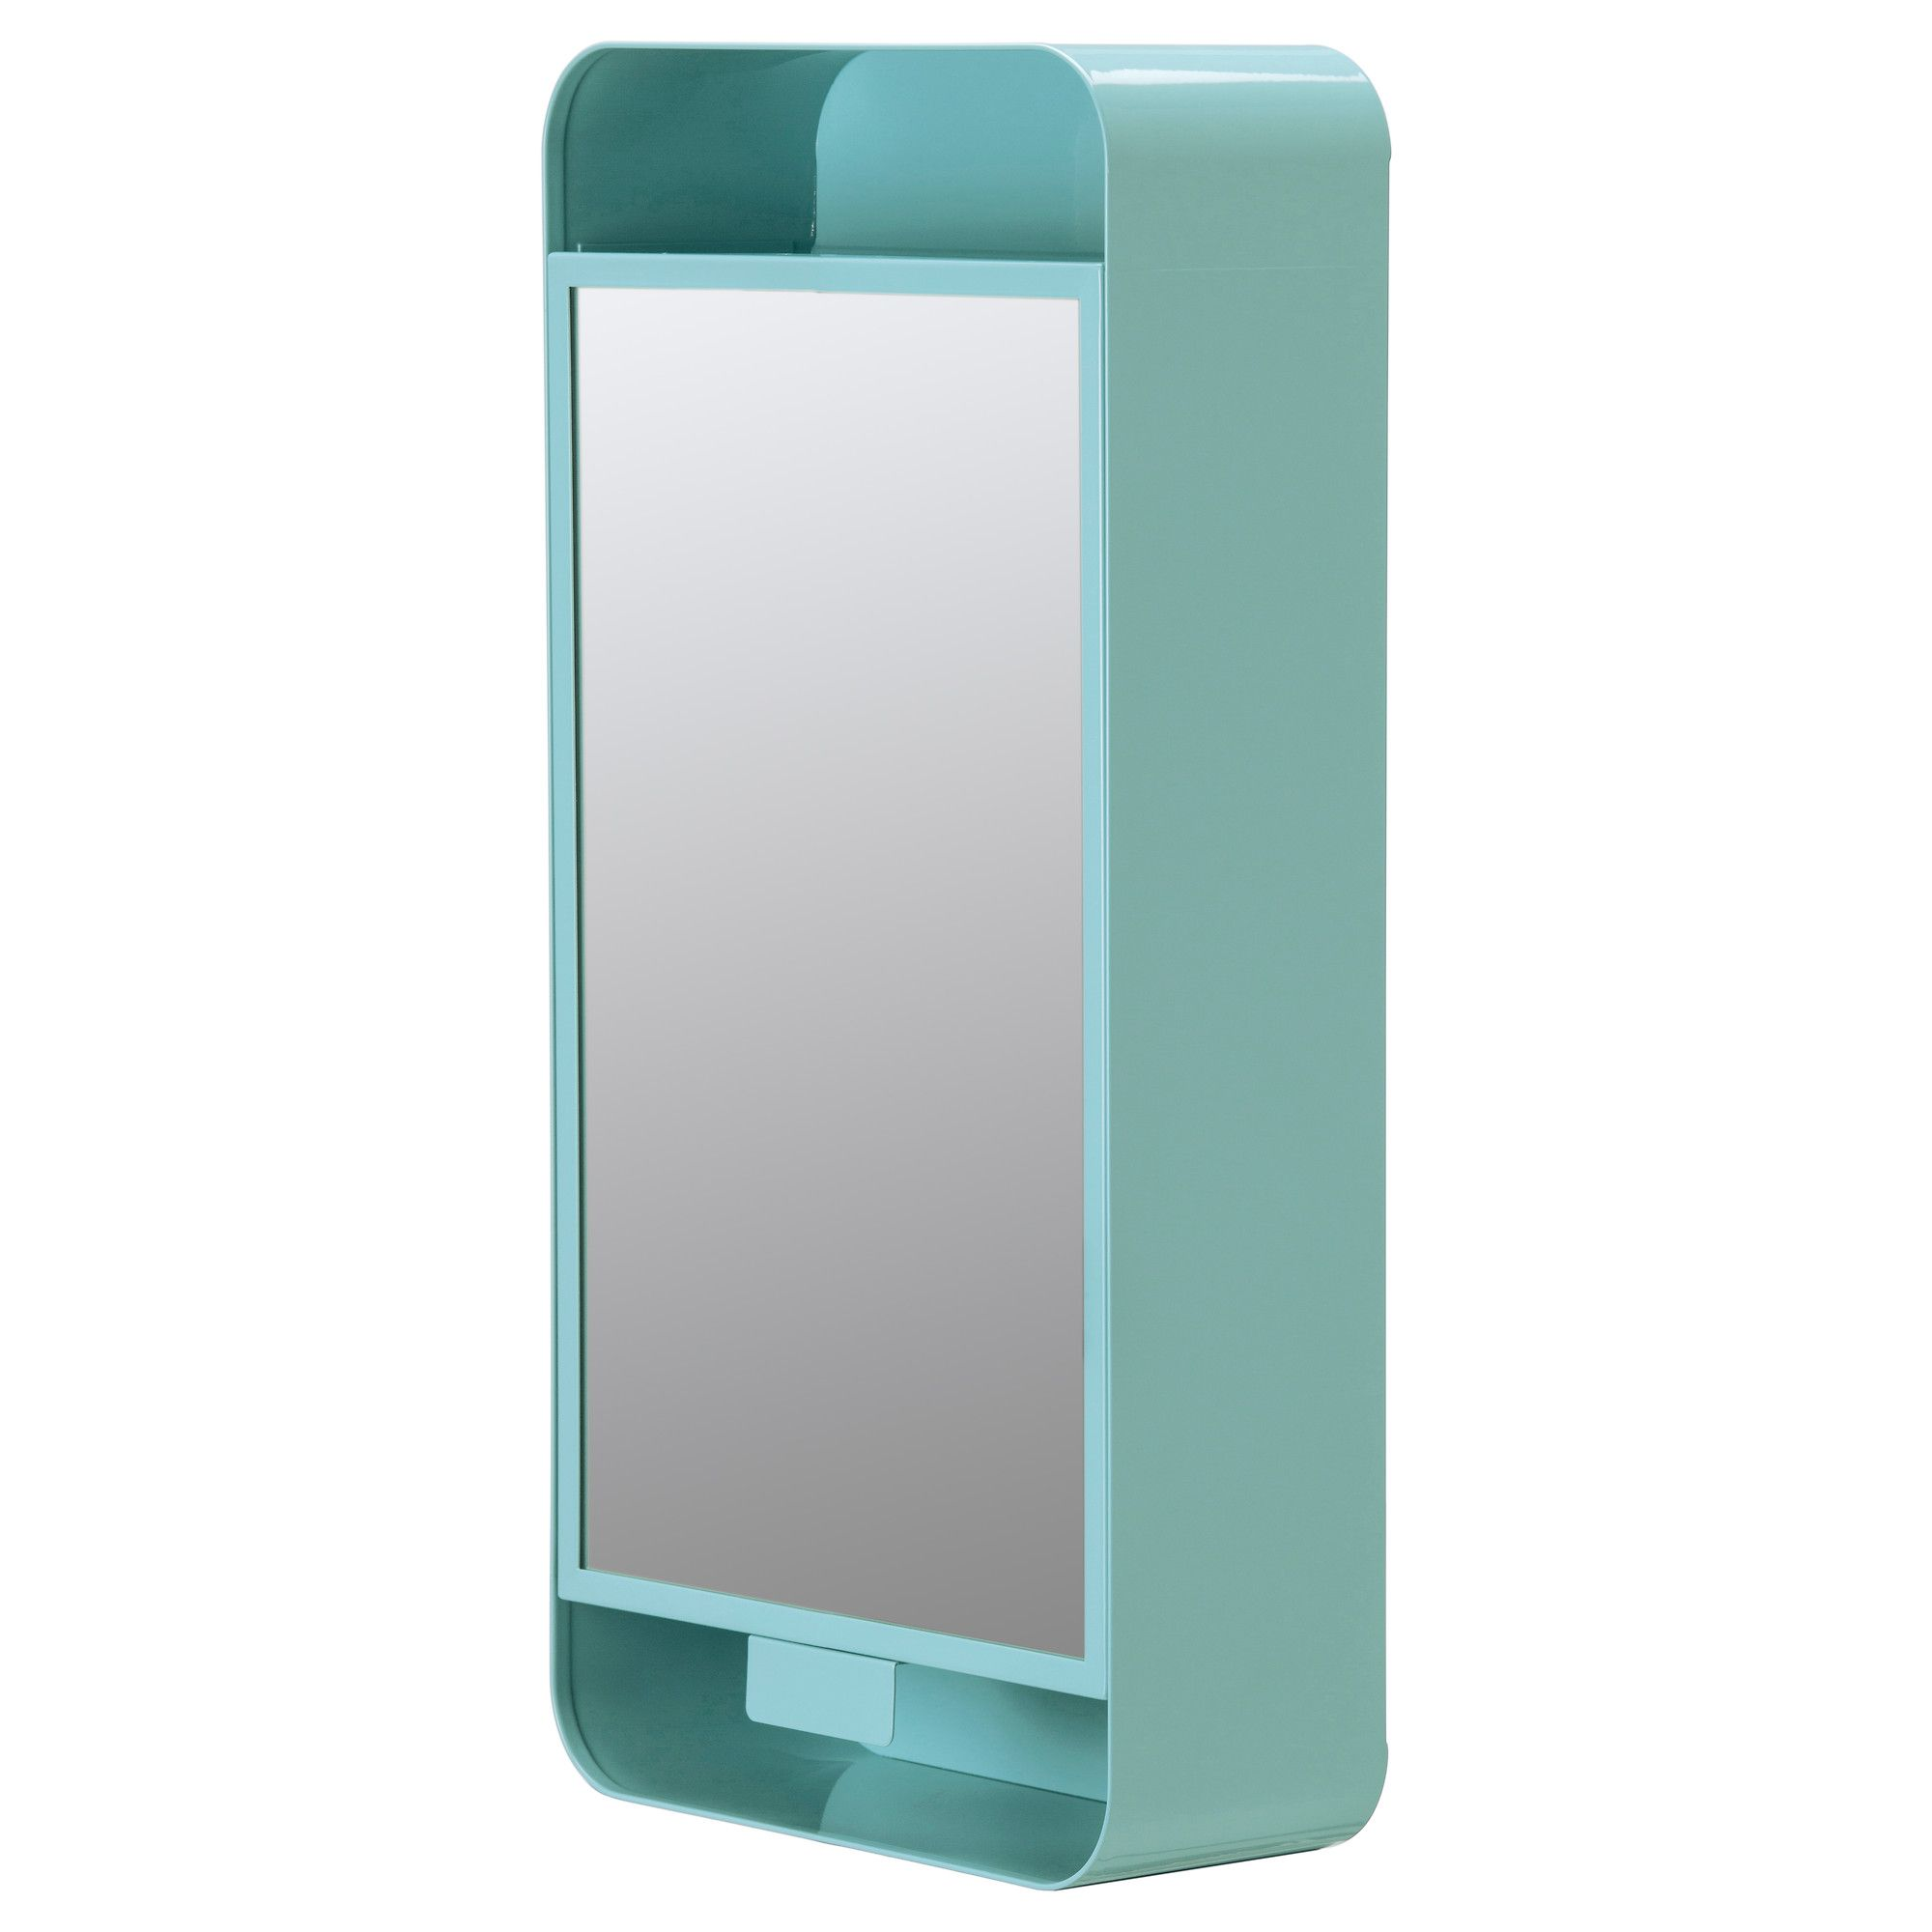 gunnern mirror cabinet with 1 door turquoise blue mirror cabinets turquoise and vanities. Black Bedroom Furniture Sets. Home Design Ideas